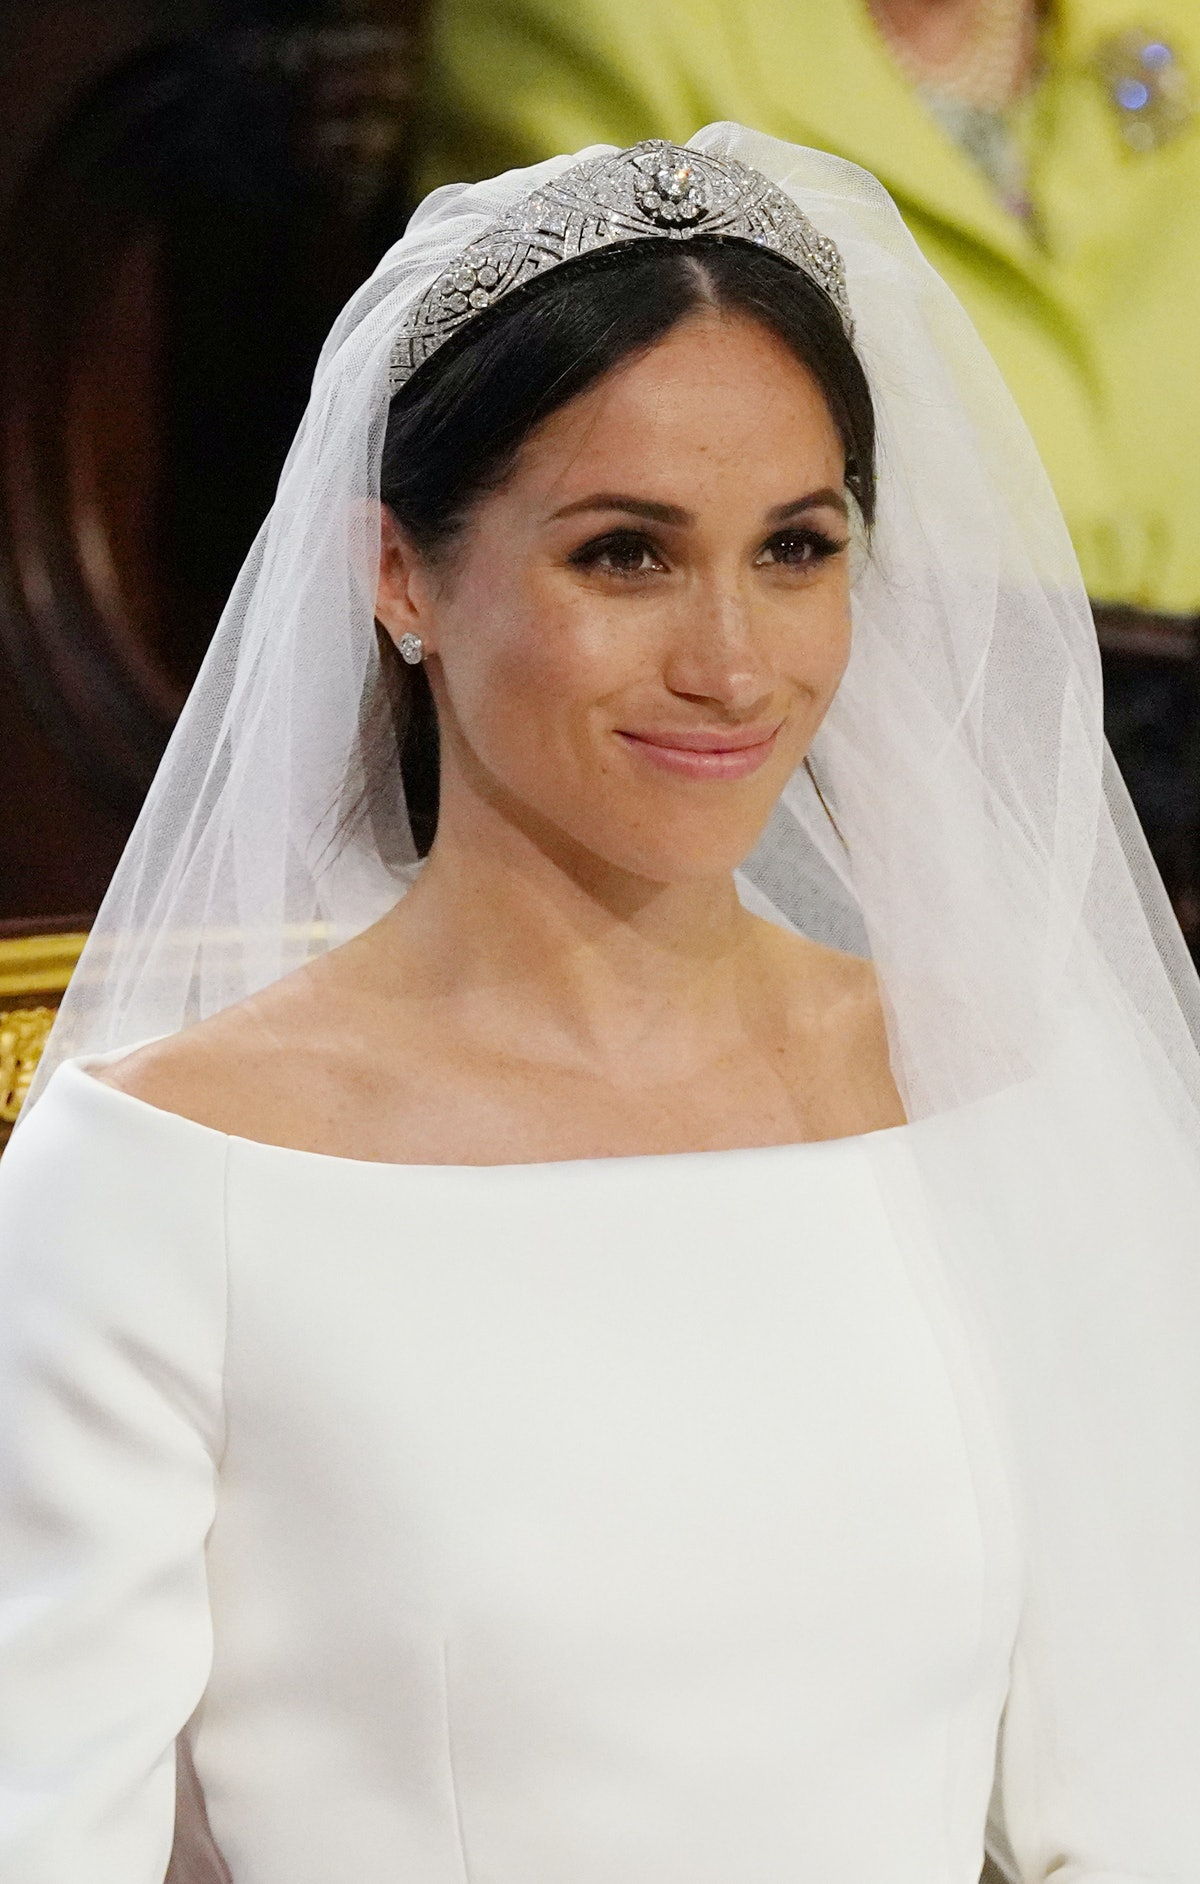 US fiancee of Britain's Prince Harry, Meghan Markle arrives at the High Altar for their wedding cere...